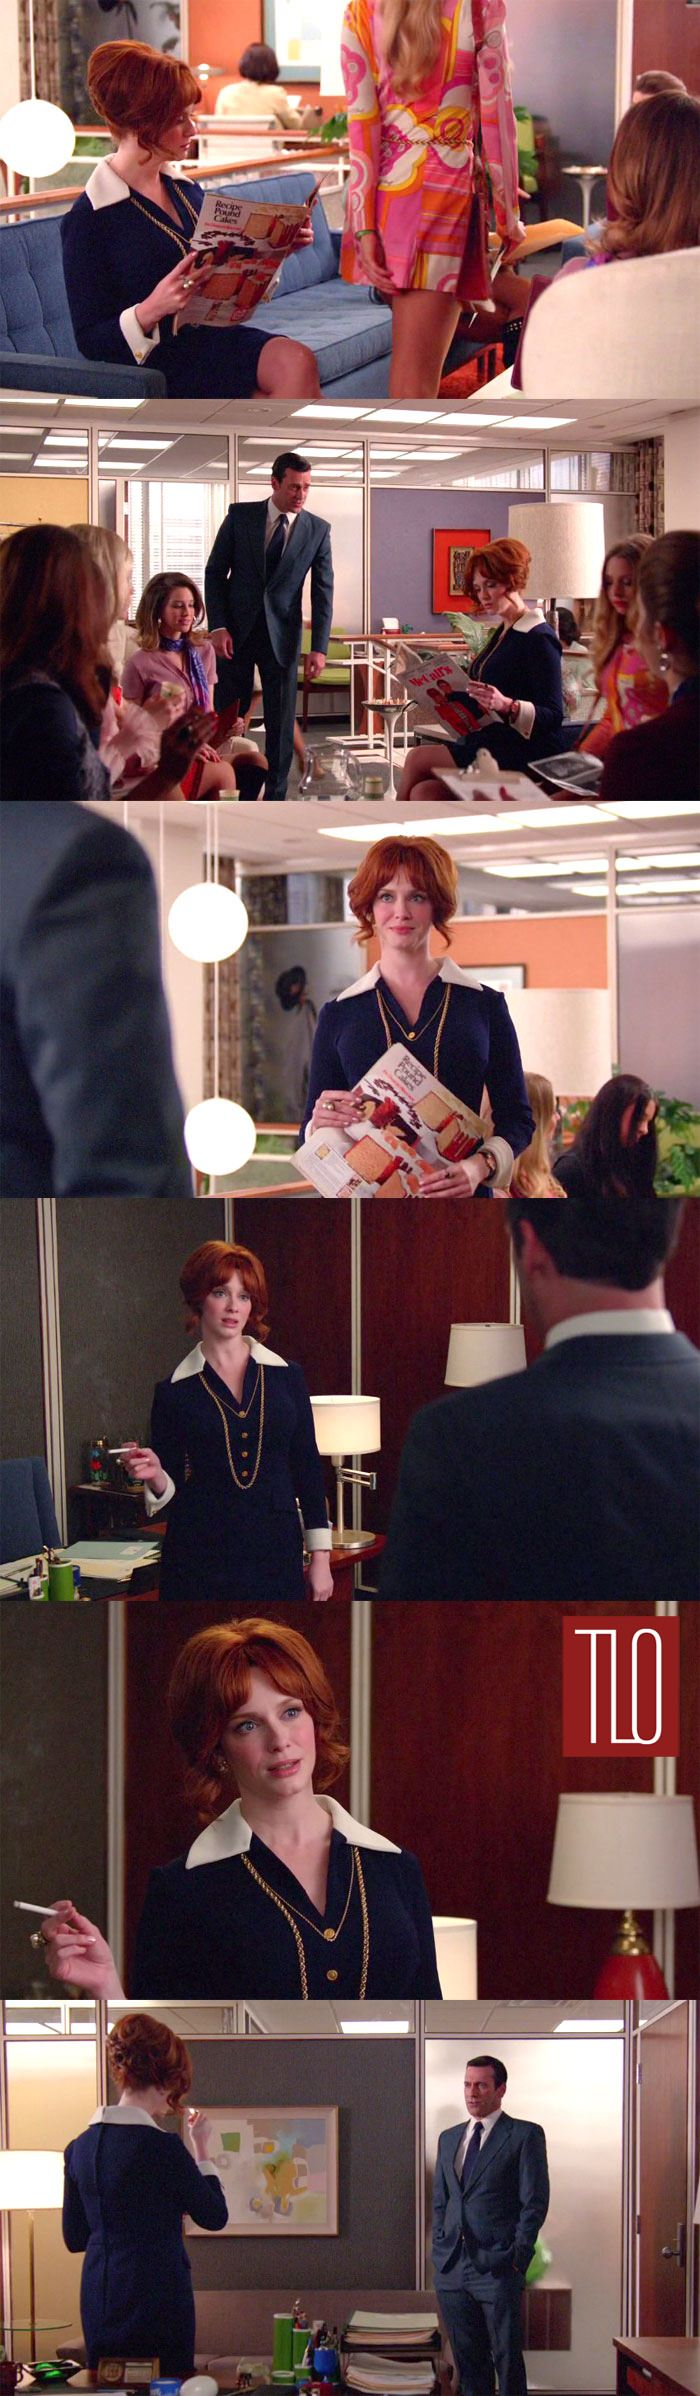 Mad-Men-Television-Series-Season-7-Episode-8-Severance-Mad-Style-Costume-Analysis-Tom-Lorenzo-Site-TLO (6)